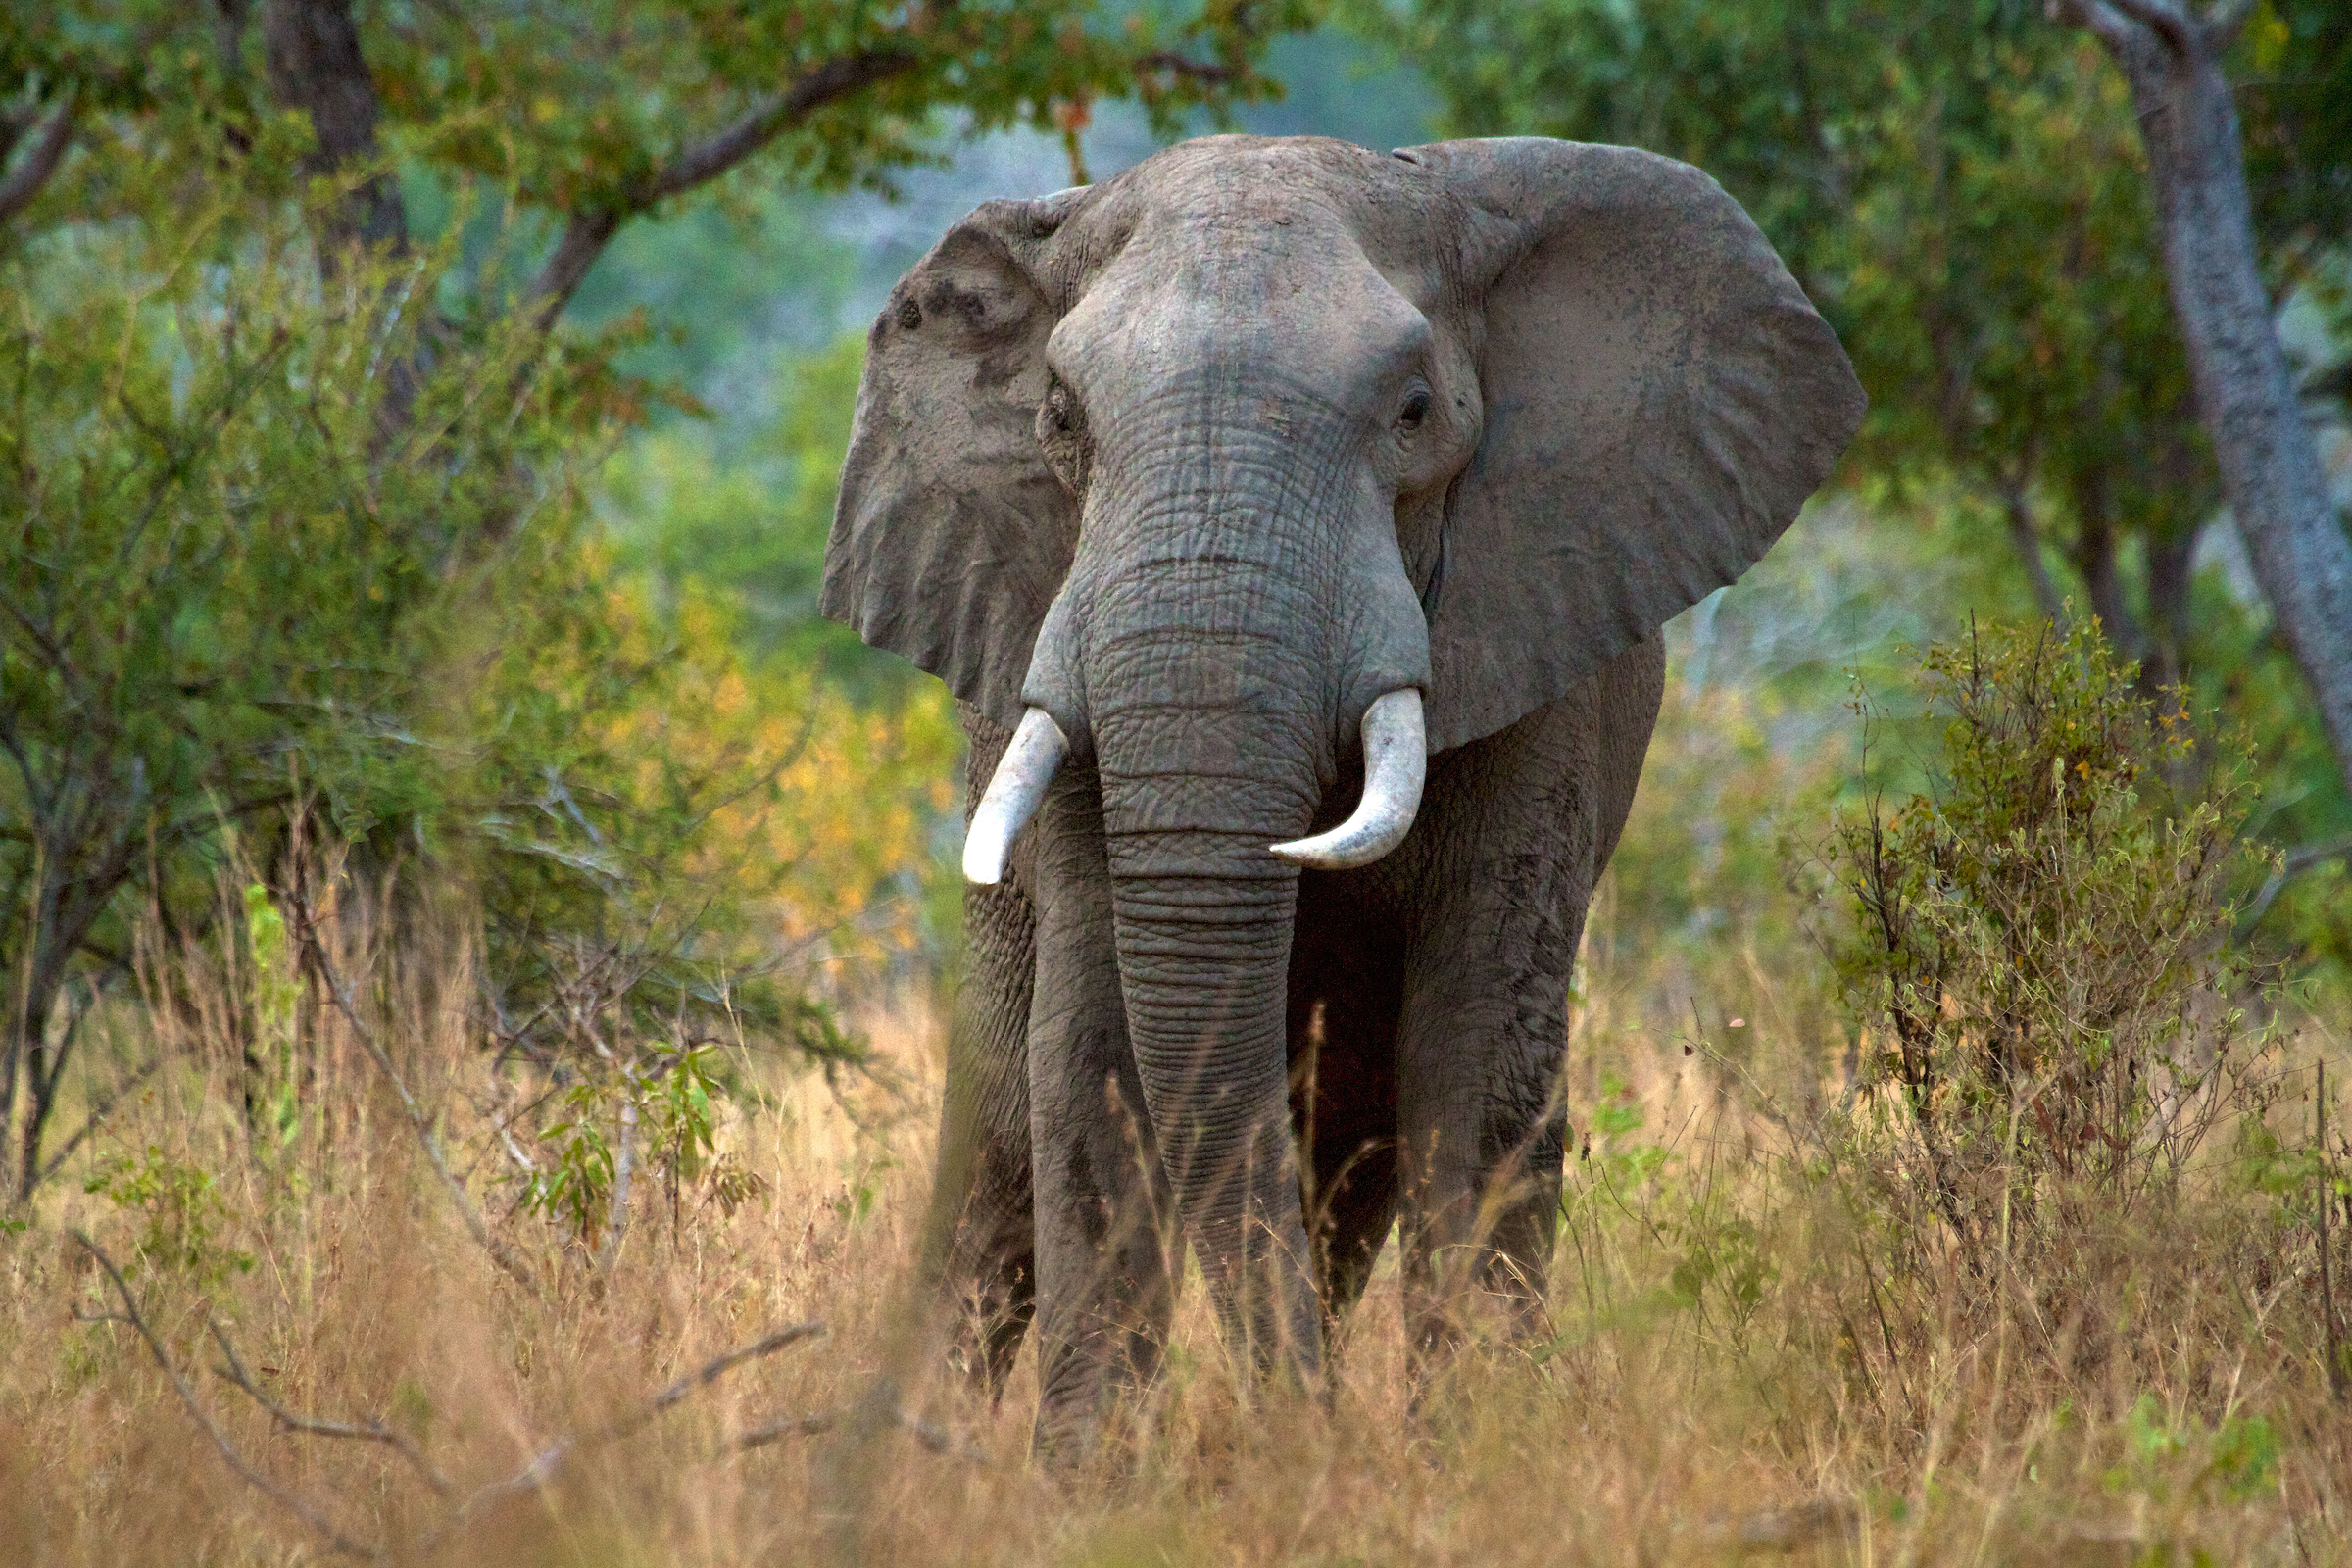 Elephants Could Disappear From Tanzania World Heritage Site Within